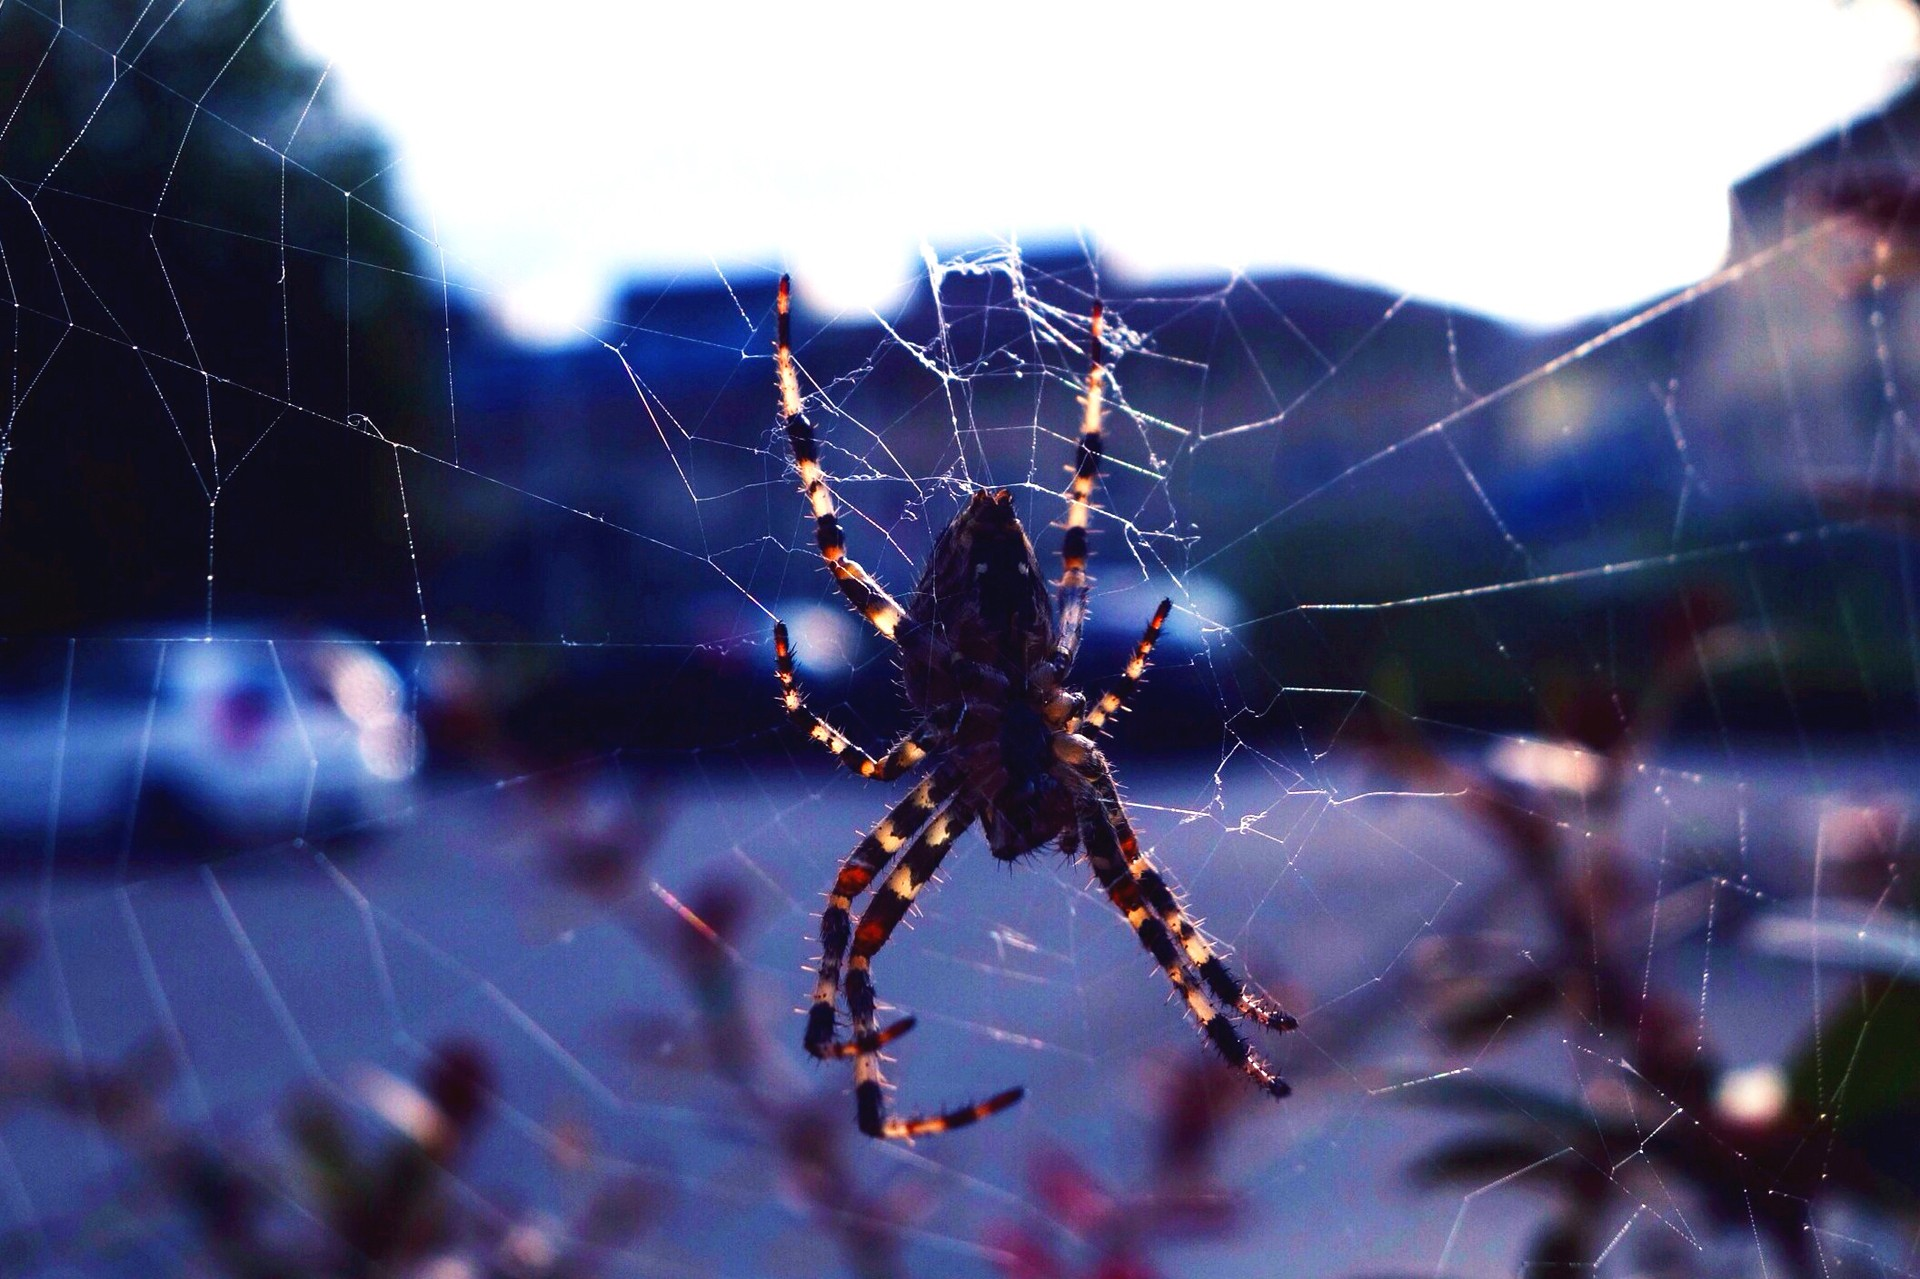 4k spiders wallpapers high quality download free - 4k wallpaper download ...